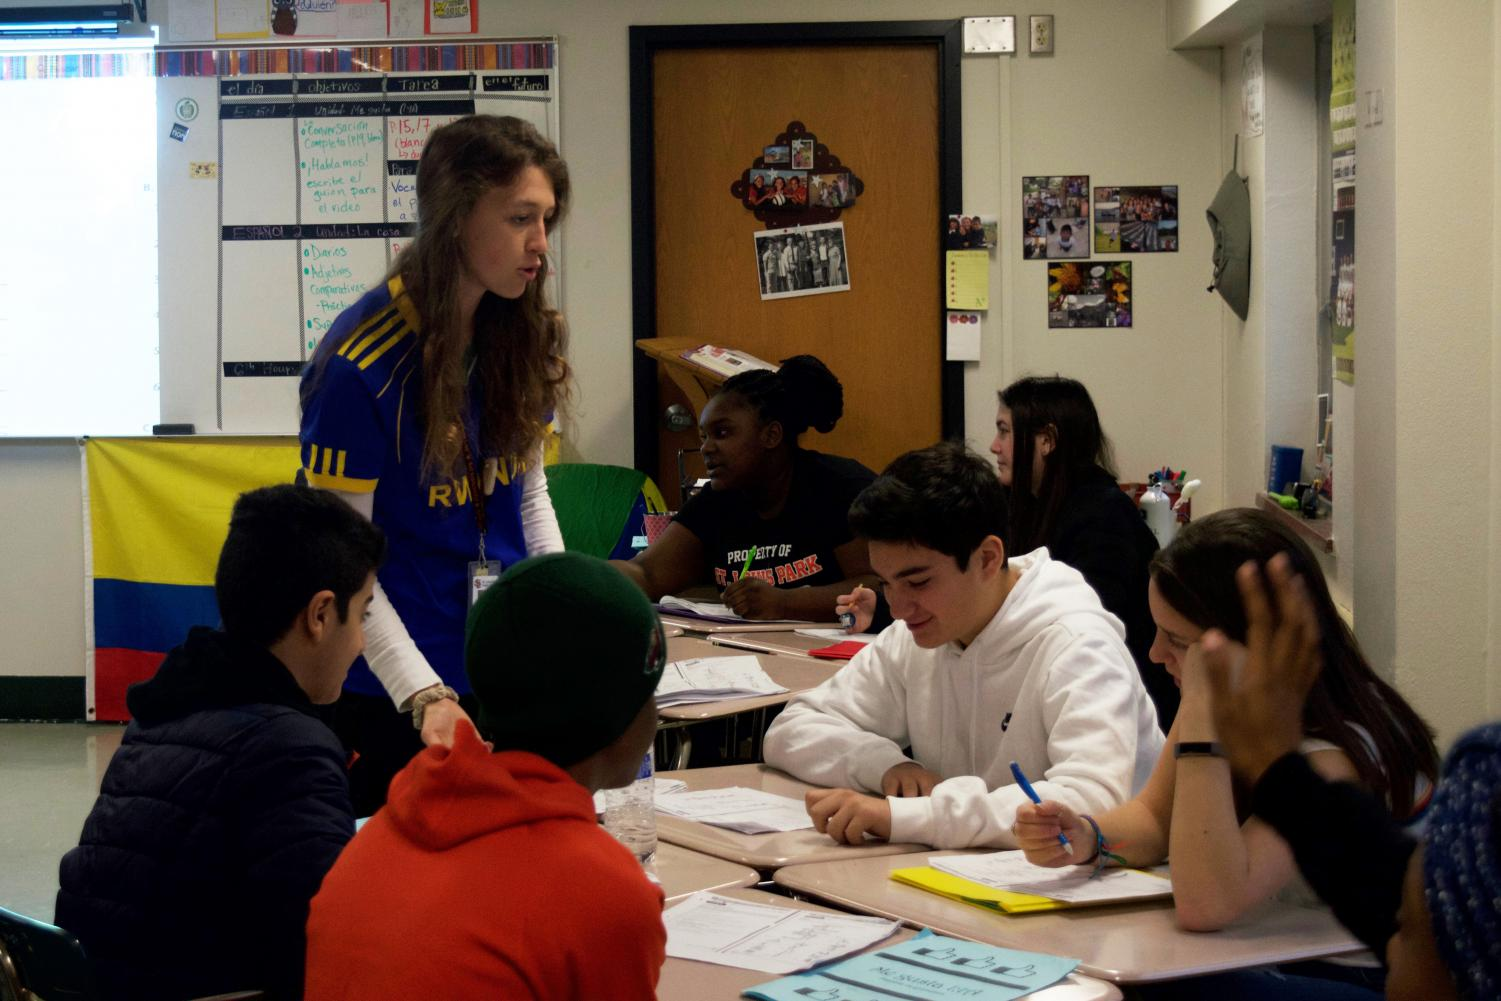 First-year Spanish teacher Lydia Brubaker helps students complete their work on Nov 1. Lydia Brubaker is the daughter of social studies teacher Bradley Brubaker.